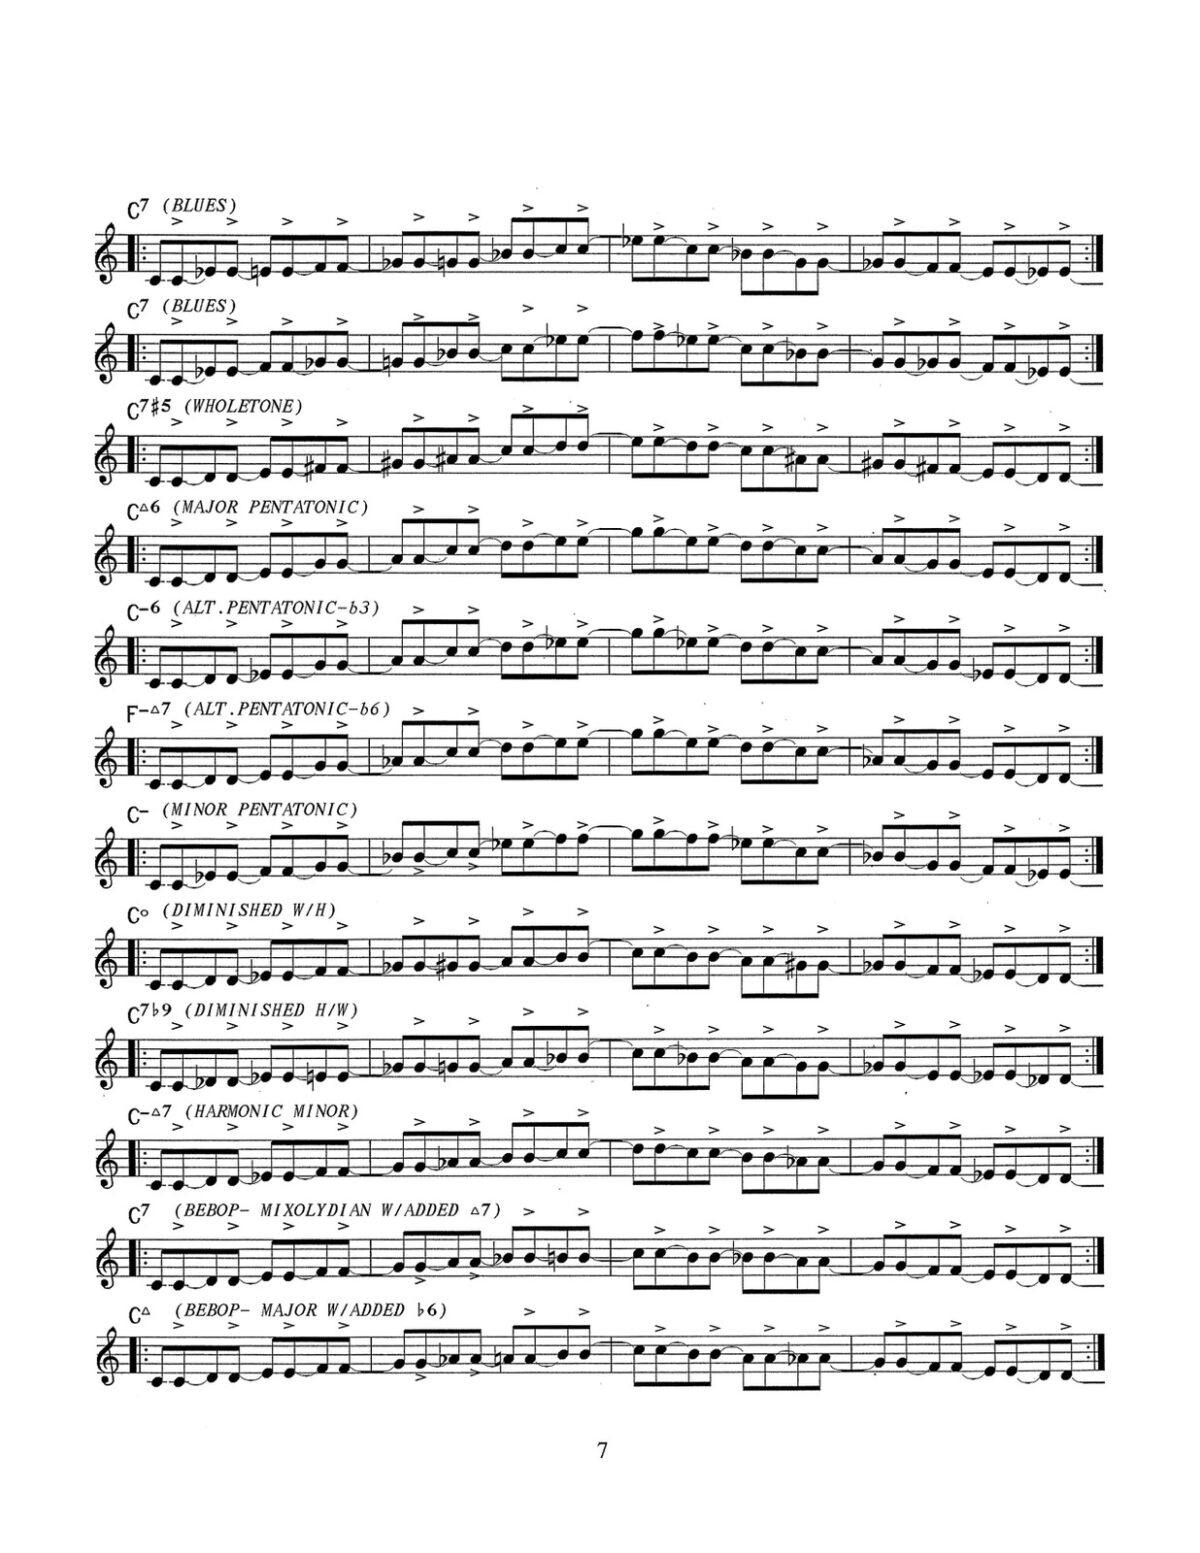 D'Aveni, Jazz Trumpet Technique Vol.4 Articulation-p09